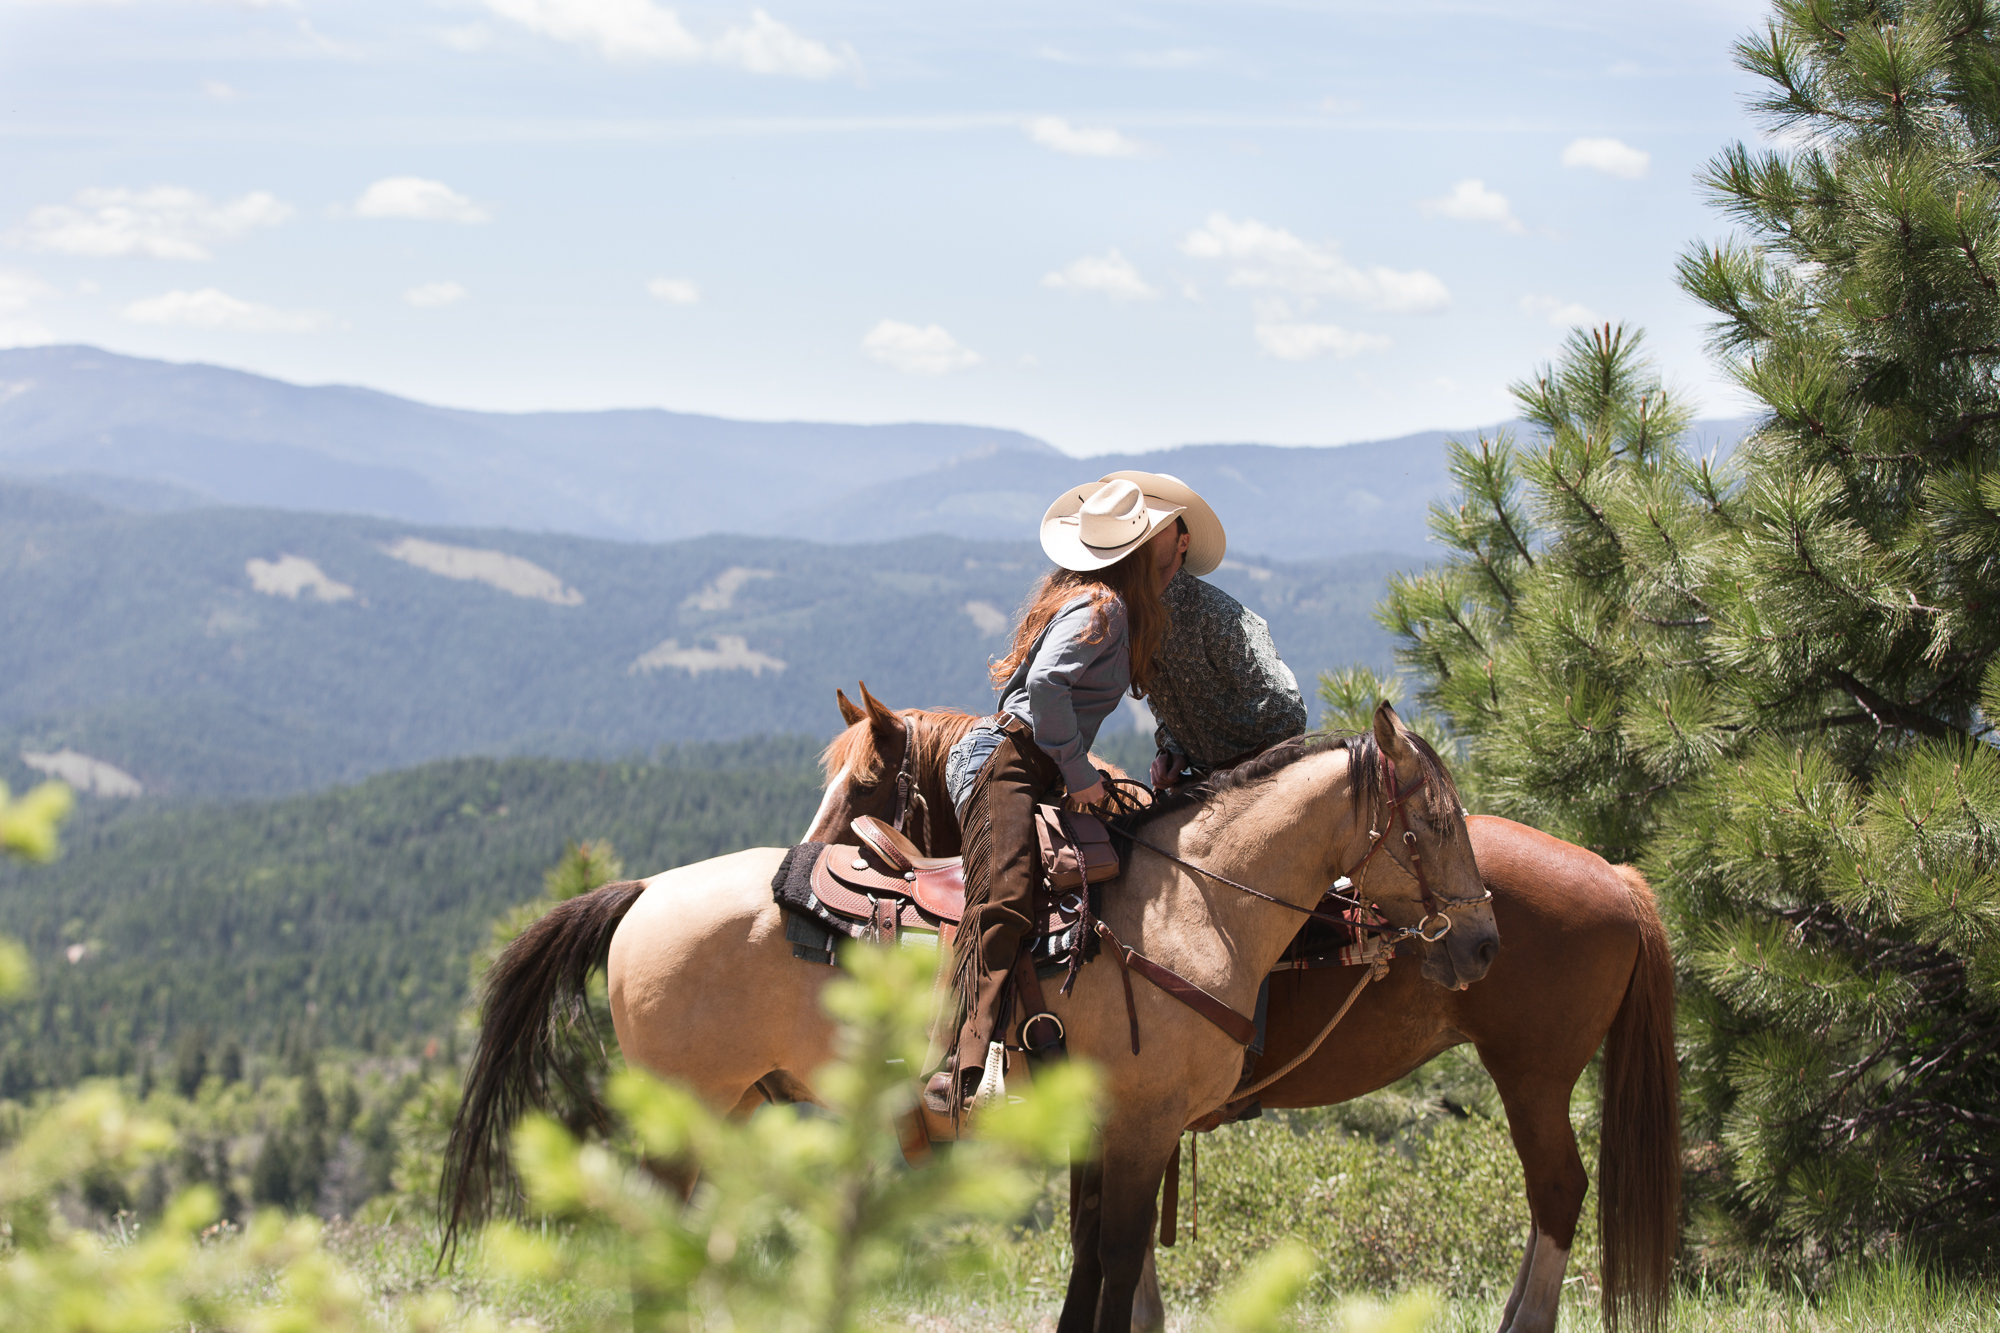 Romance on horseback at Greenhorn Ranch